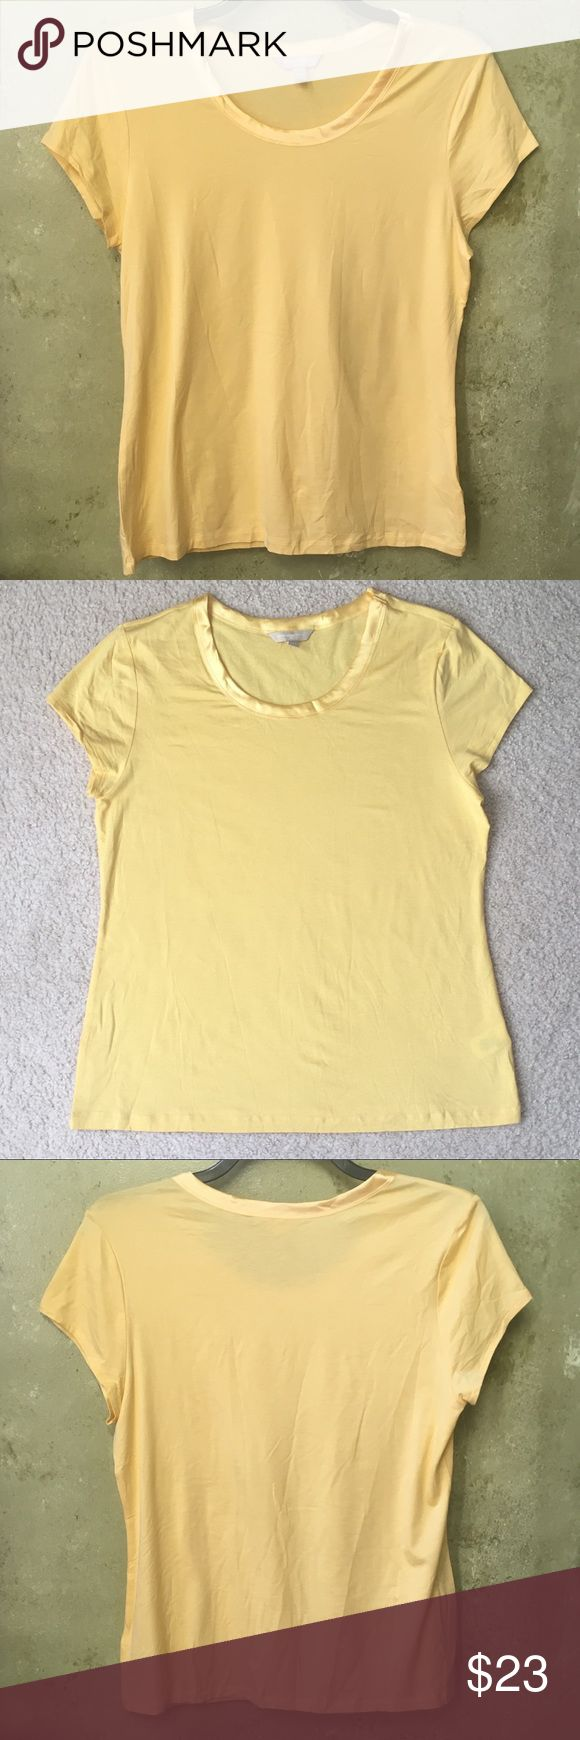 Banana Republic Top Banana Republic Top. Beautiful yellow short sleeve top in a size XL. Soft material and perfect for any occasion and outfit. NWOT Banana Republic Tops